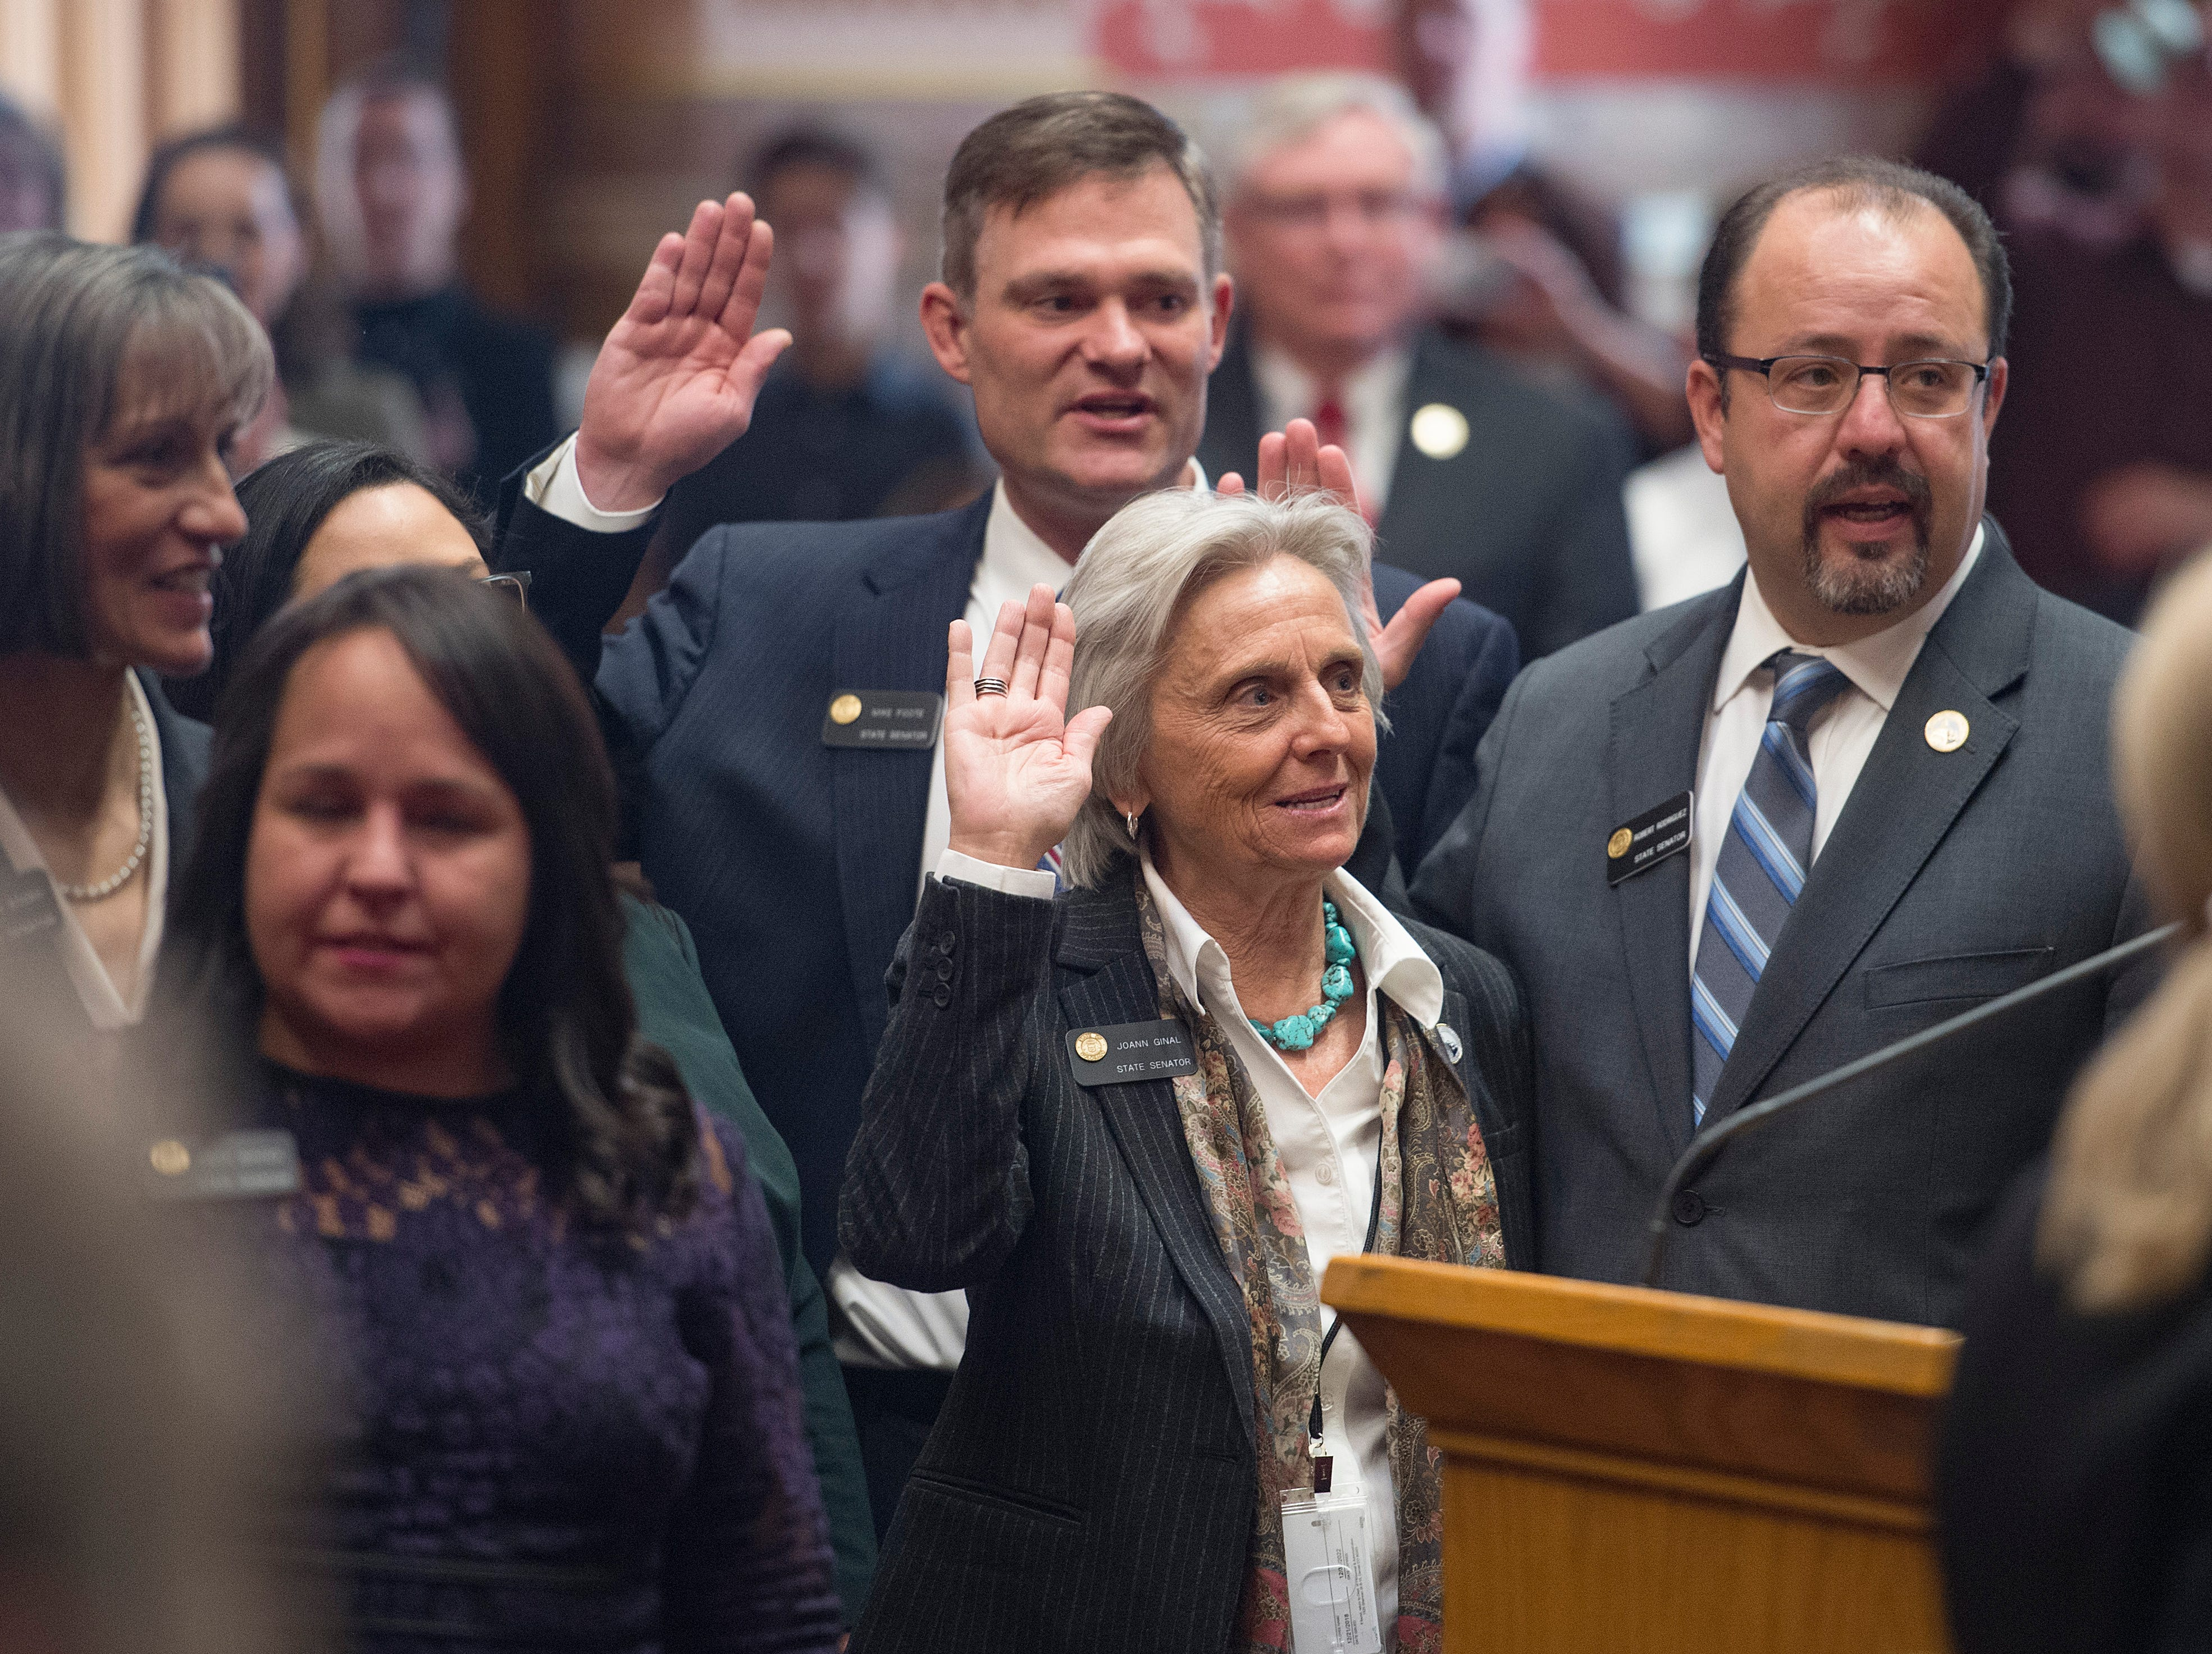 State Sen. Joann Ginal is sworn in with a group of new senators as the 72nd General Assembly convenes at the Colorado State Capitol on Friday, January 4, 2019.